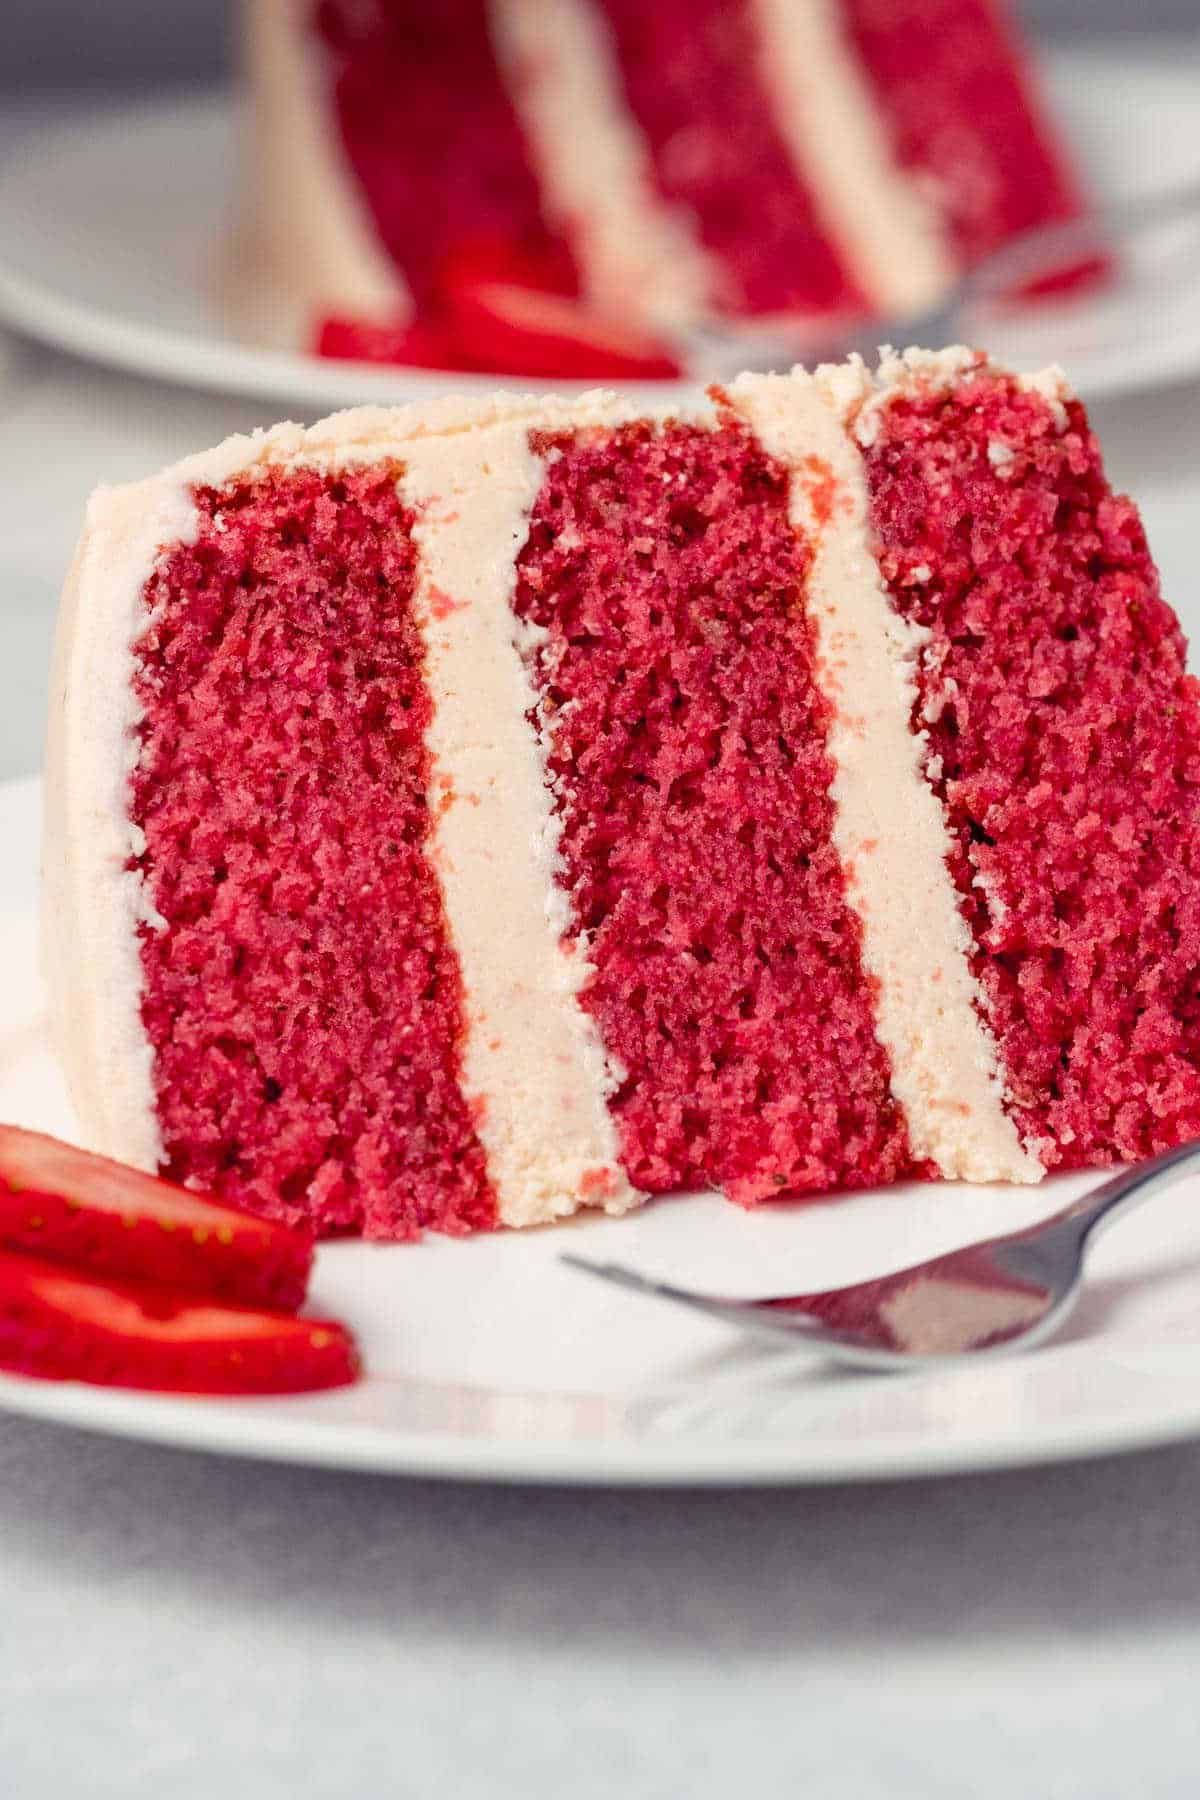 Slice of strawberry cake on a white plate with a cake fork.